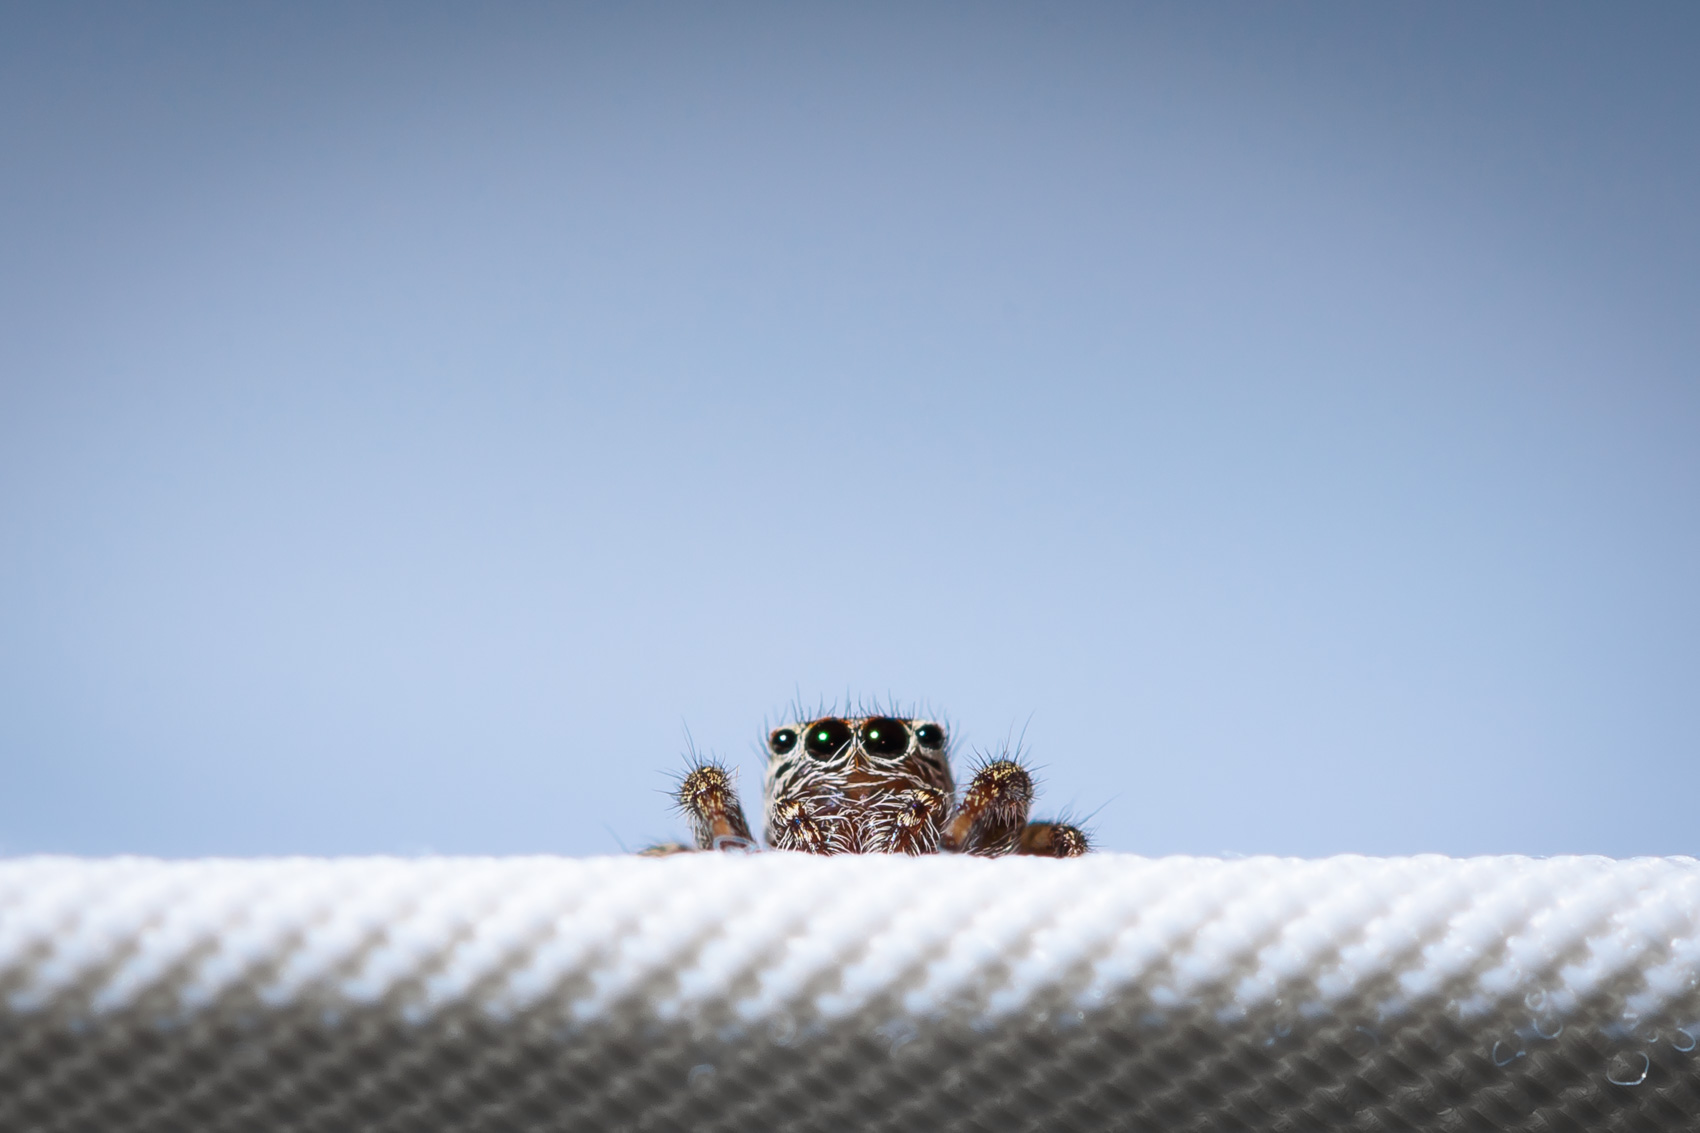 Jumping spider peaking out from a chair